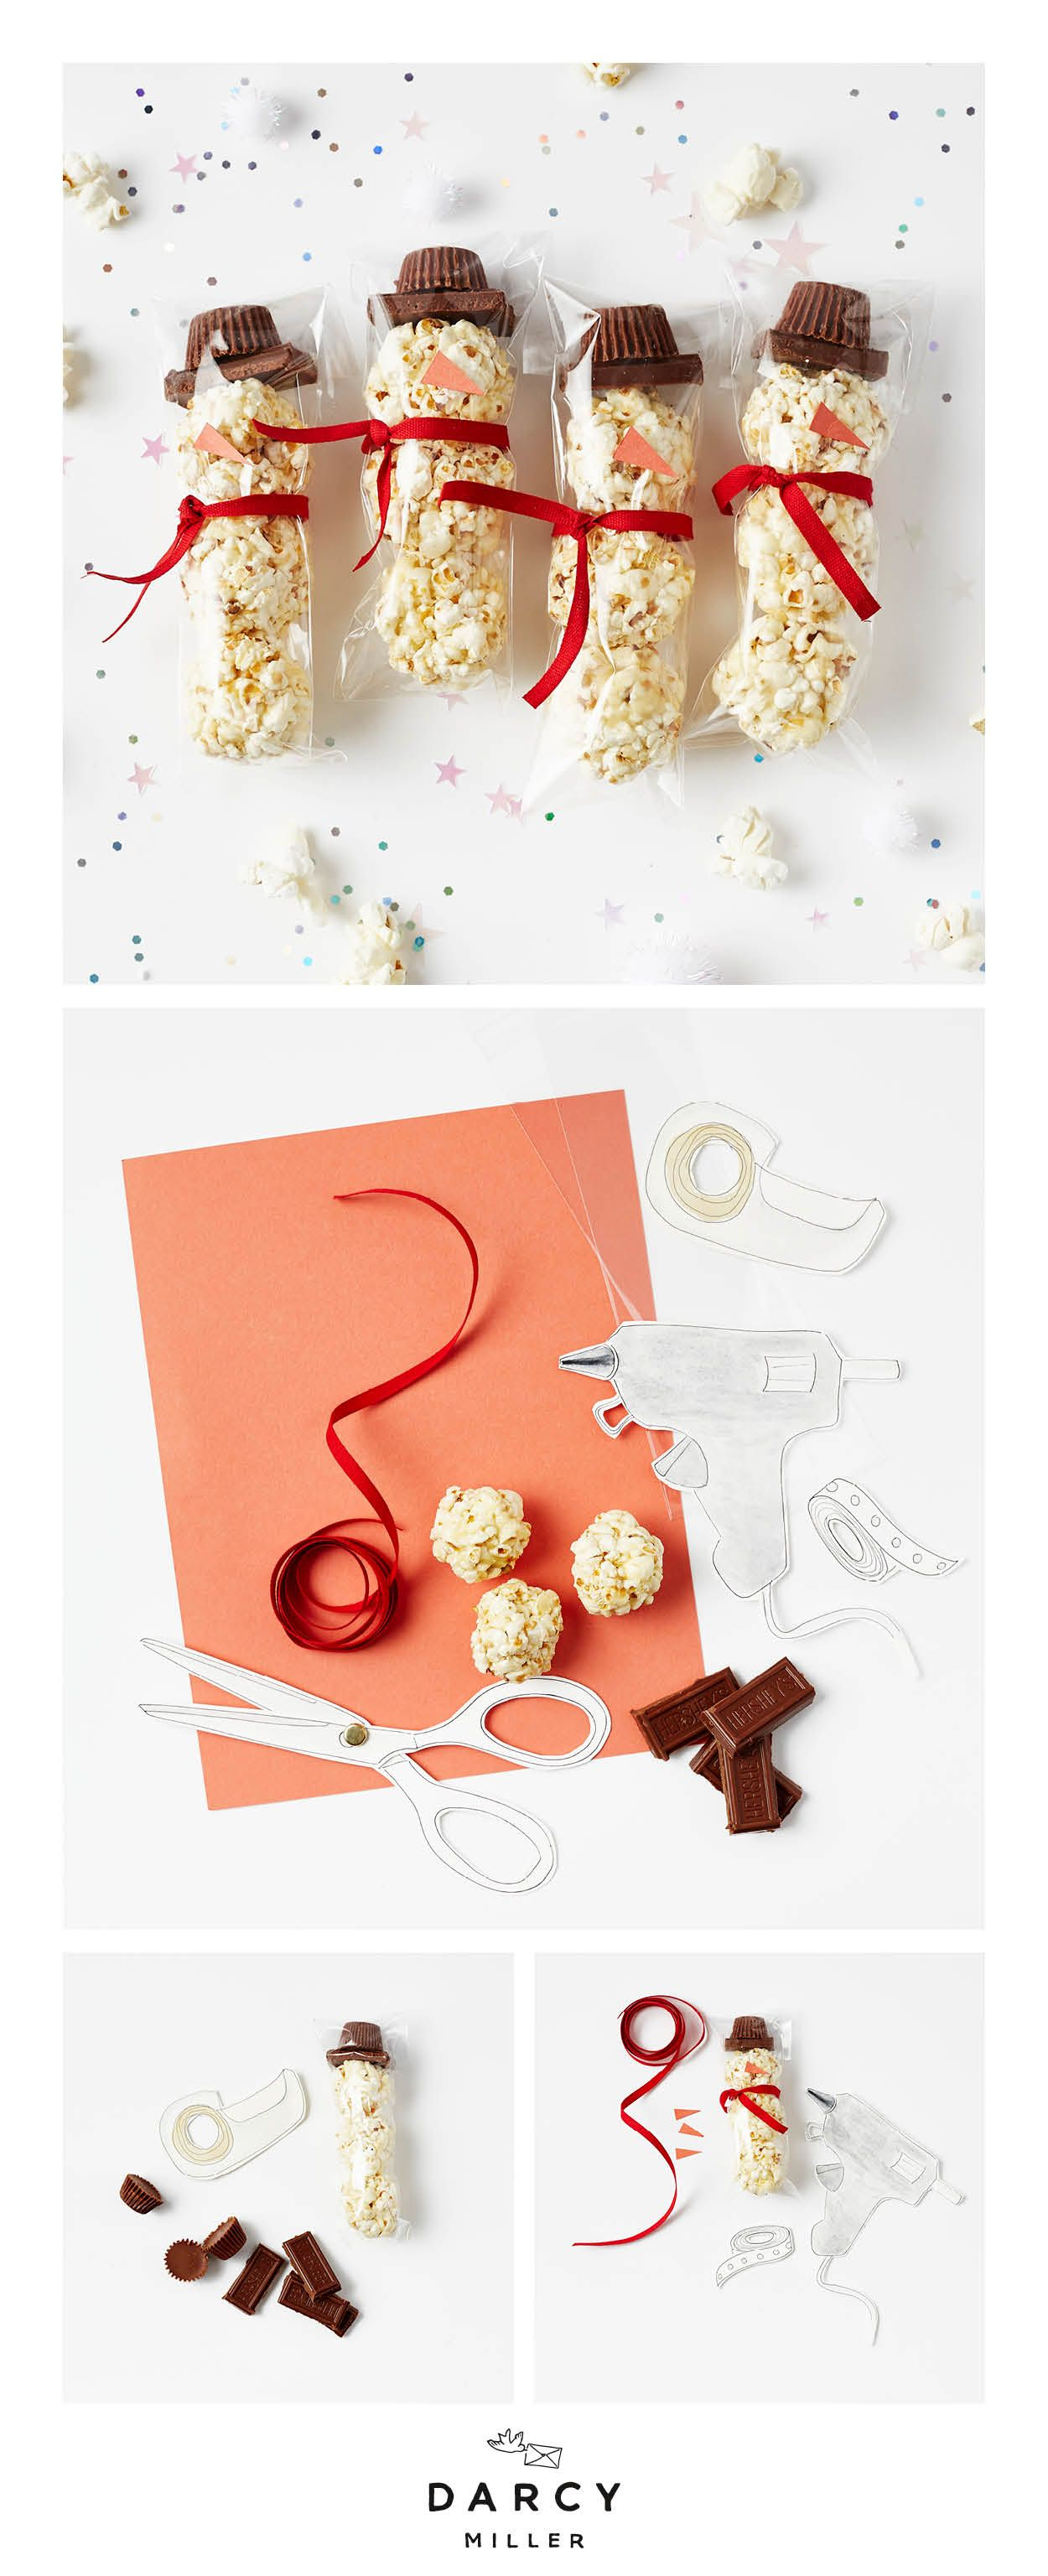 Make This Snowman Treat - Darcy Miller Designs Simple Instructions